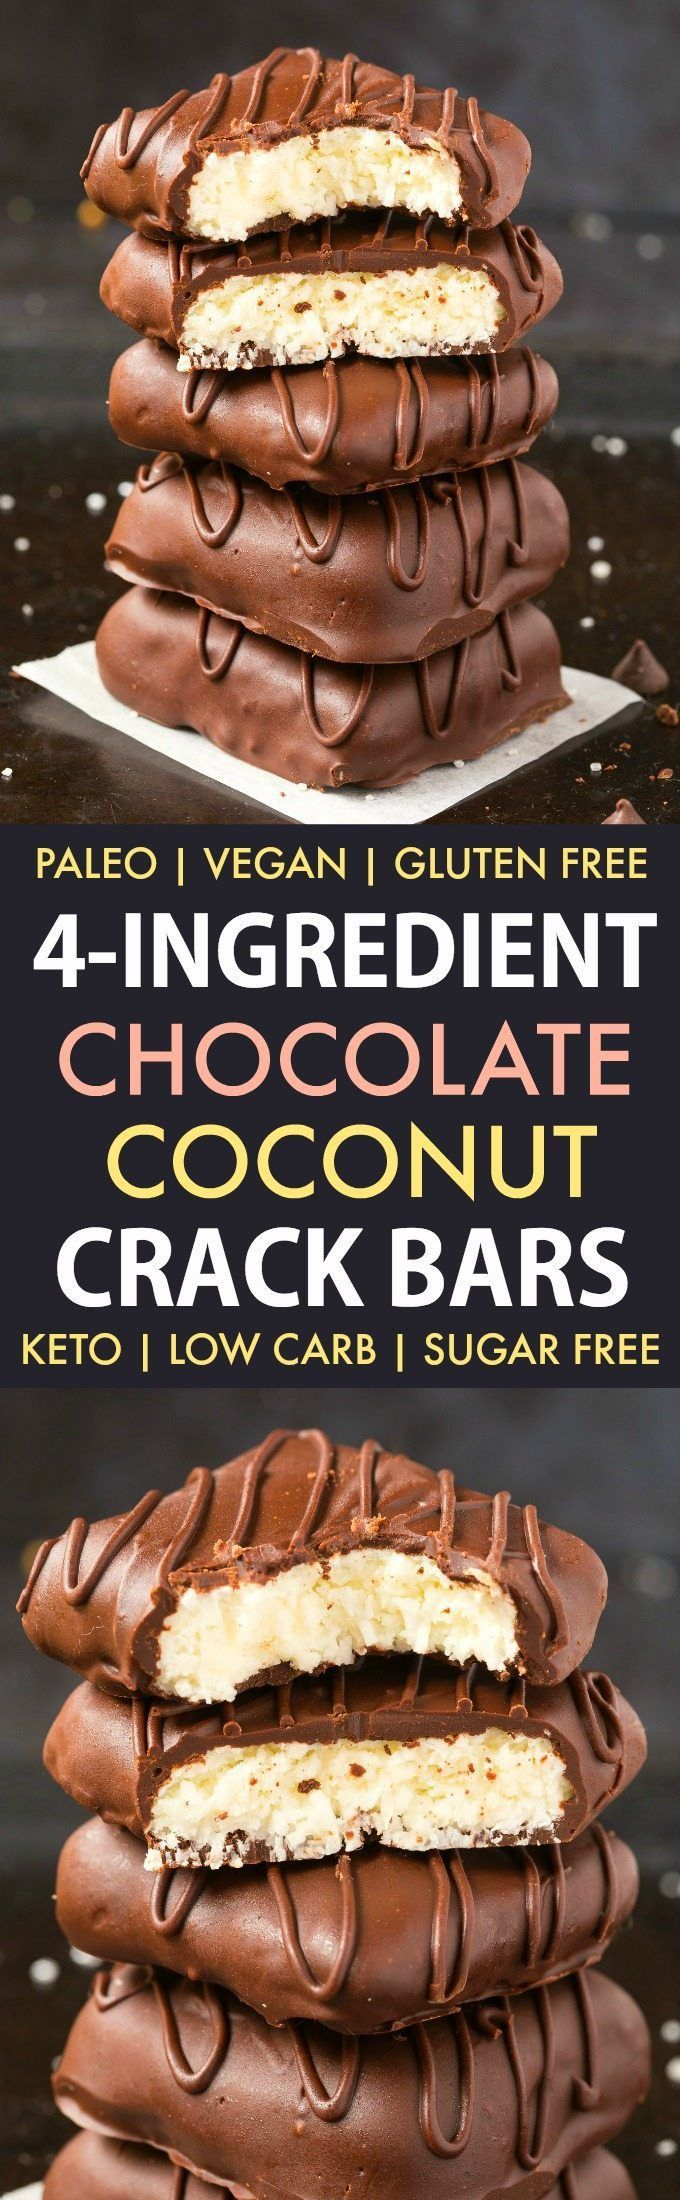 4-Ingredient No Bake Chocolate Coconut Crack Bars (Paleo, Vegan, Keto, Sugar Free, Gluten Free)- Easy, healthy and seriously addictive chocolate coconut candy bars using just 4 ingredients and needing 5 minutes! The Perfect snack or dessert to satisfy the sweet tooth! #keto